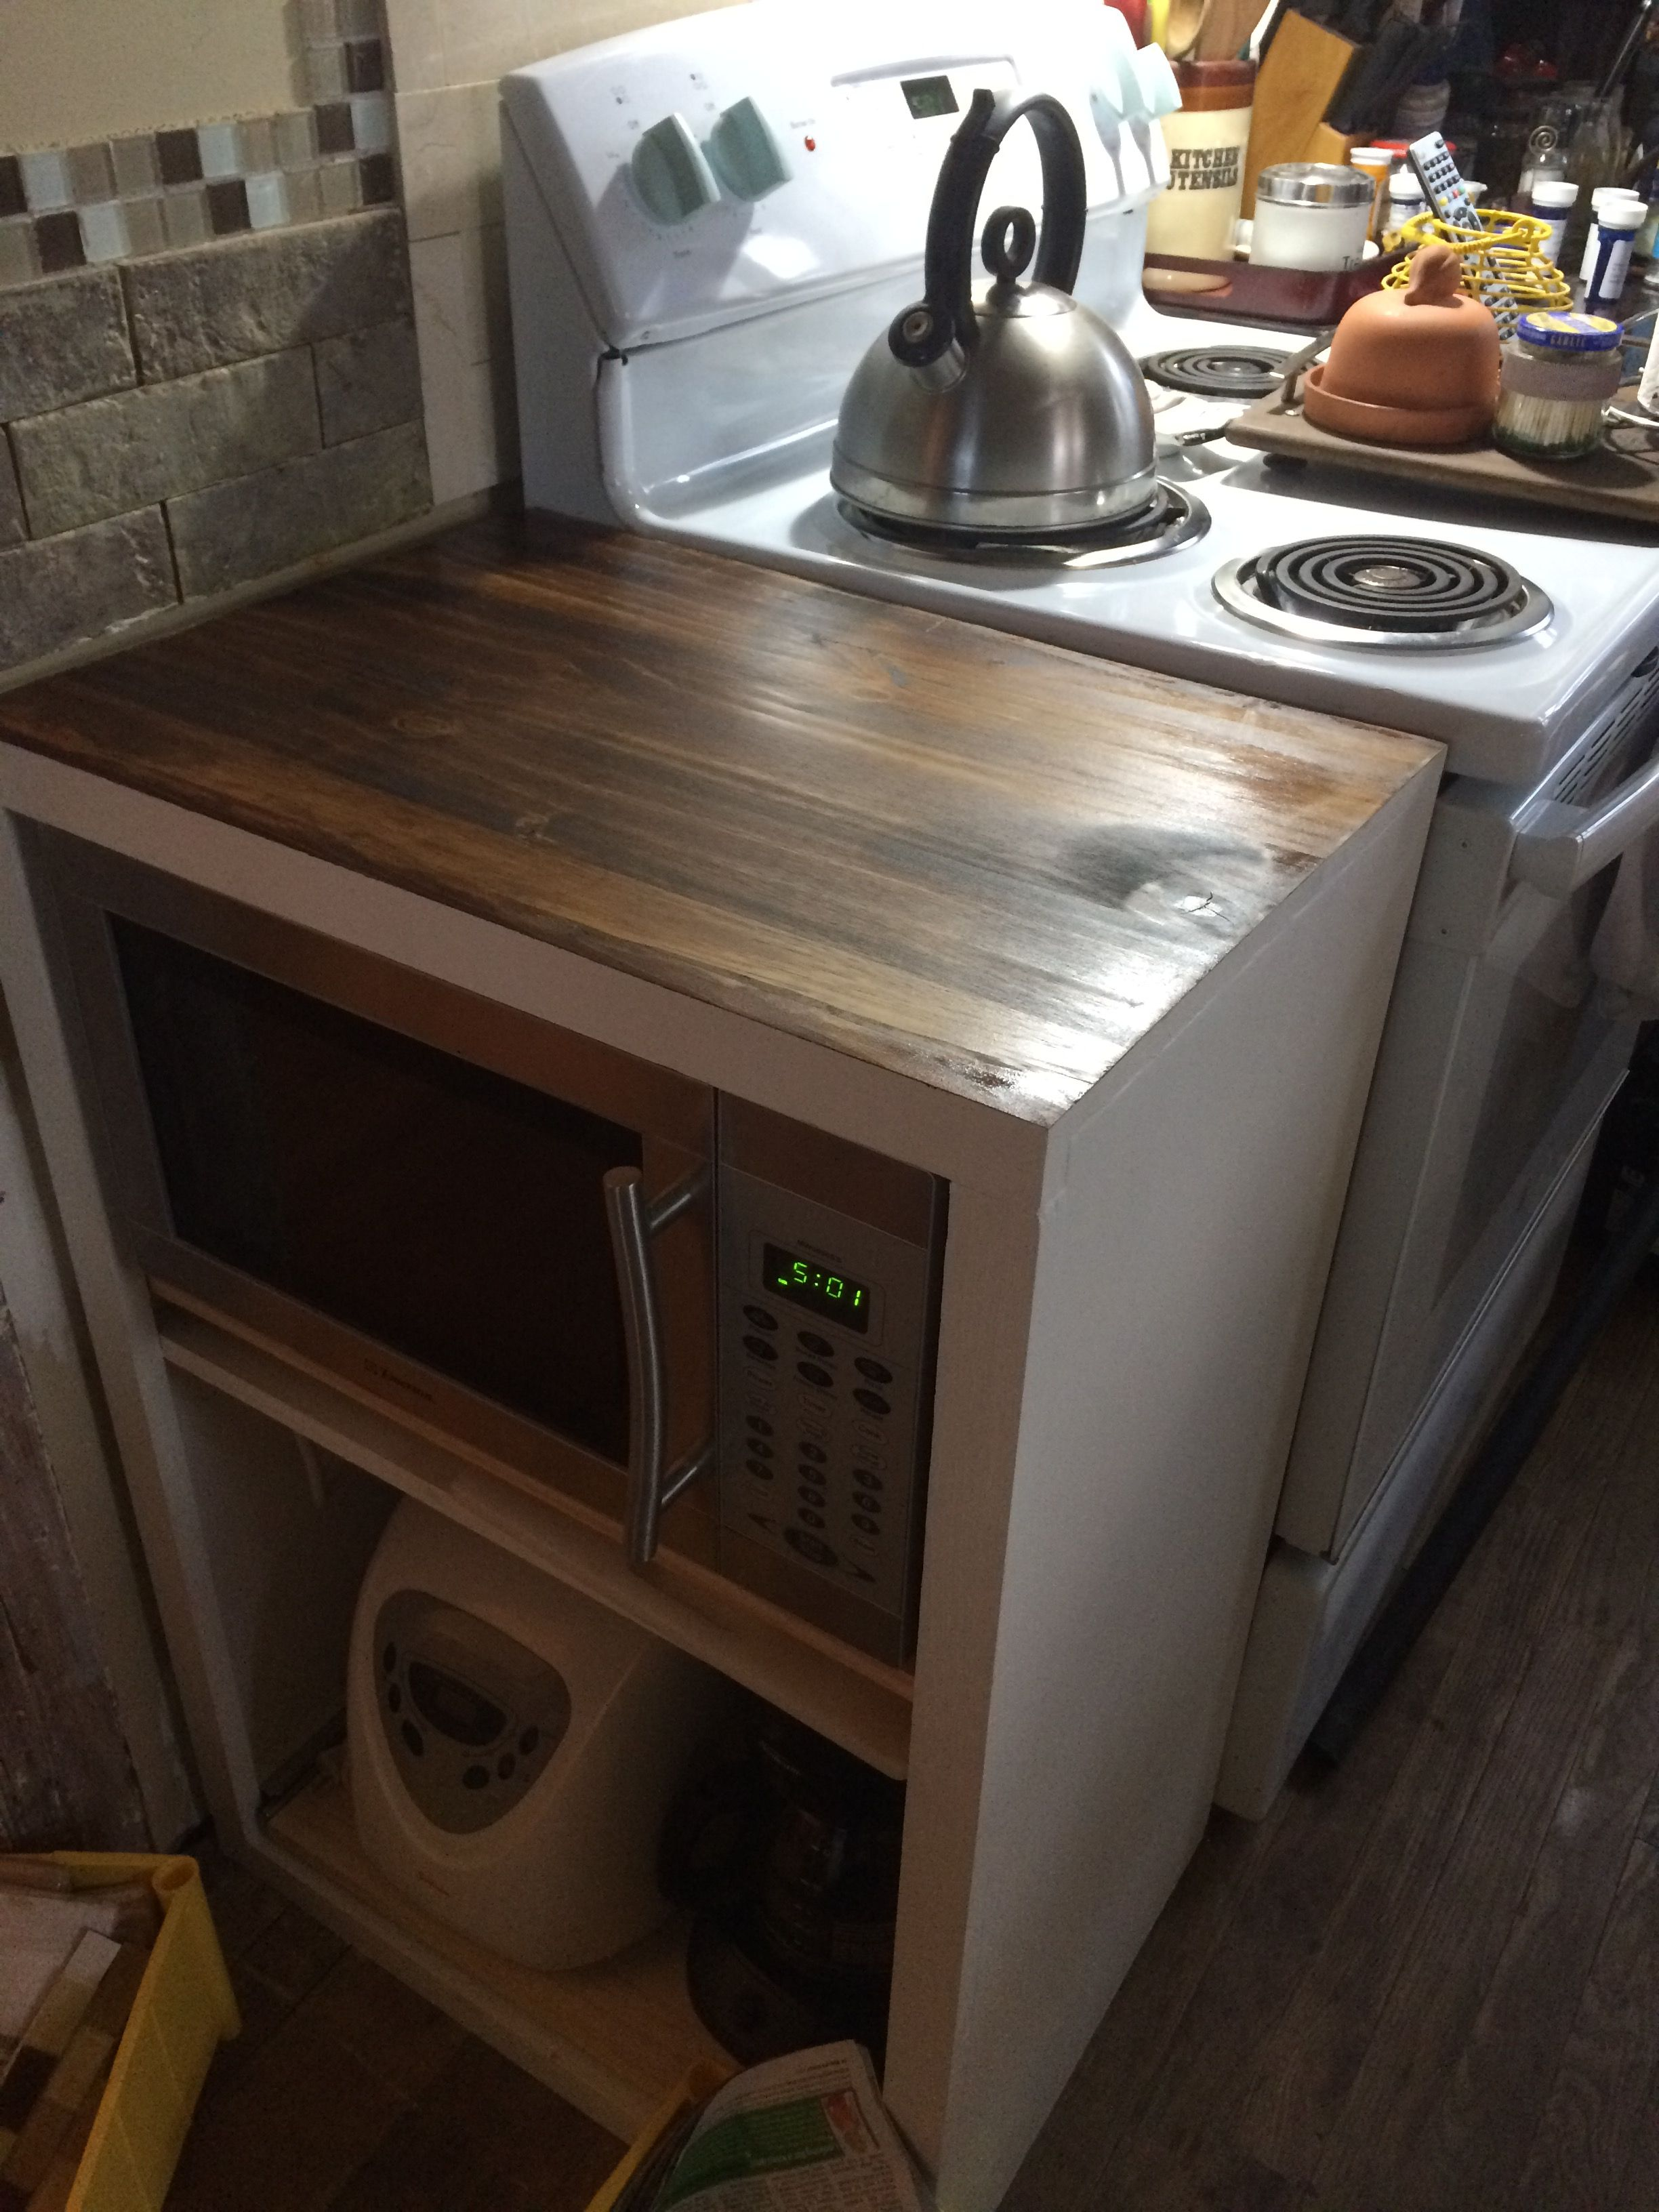 white microwave drawer home hideaway shipping with today wooden garden cart can stand free overstock product holder kitchen trash